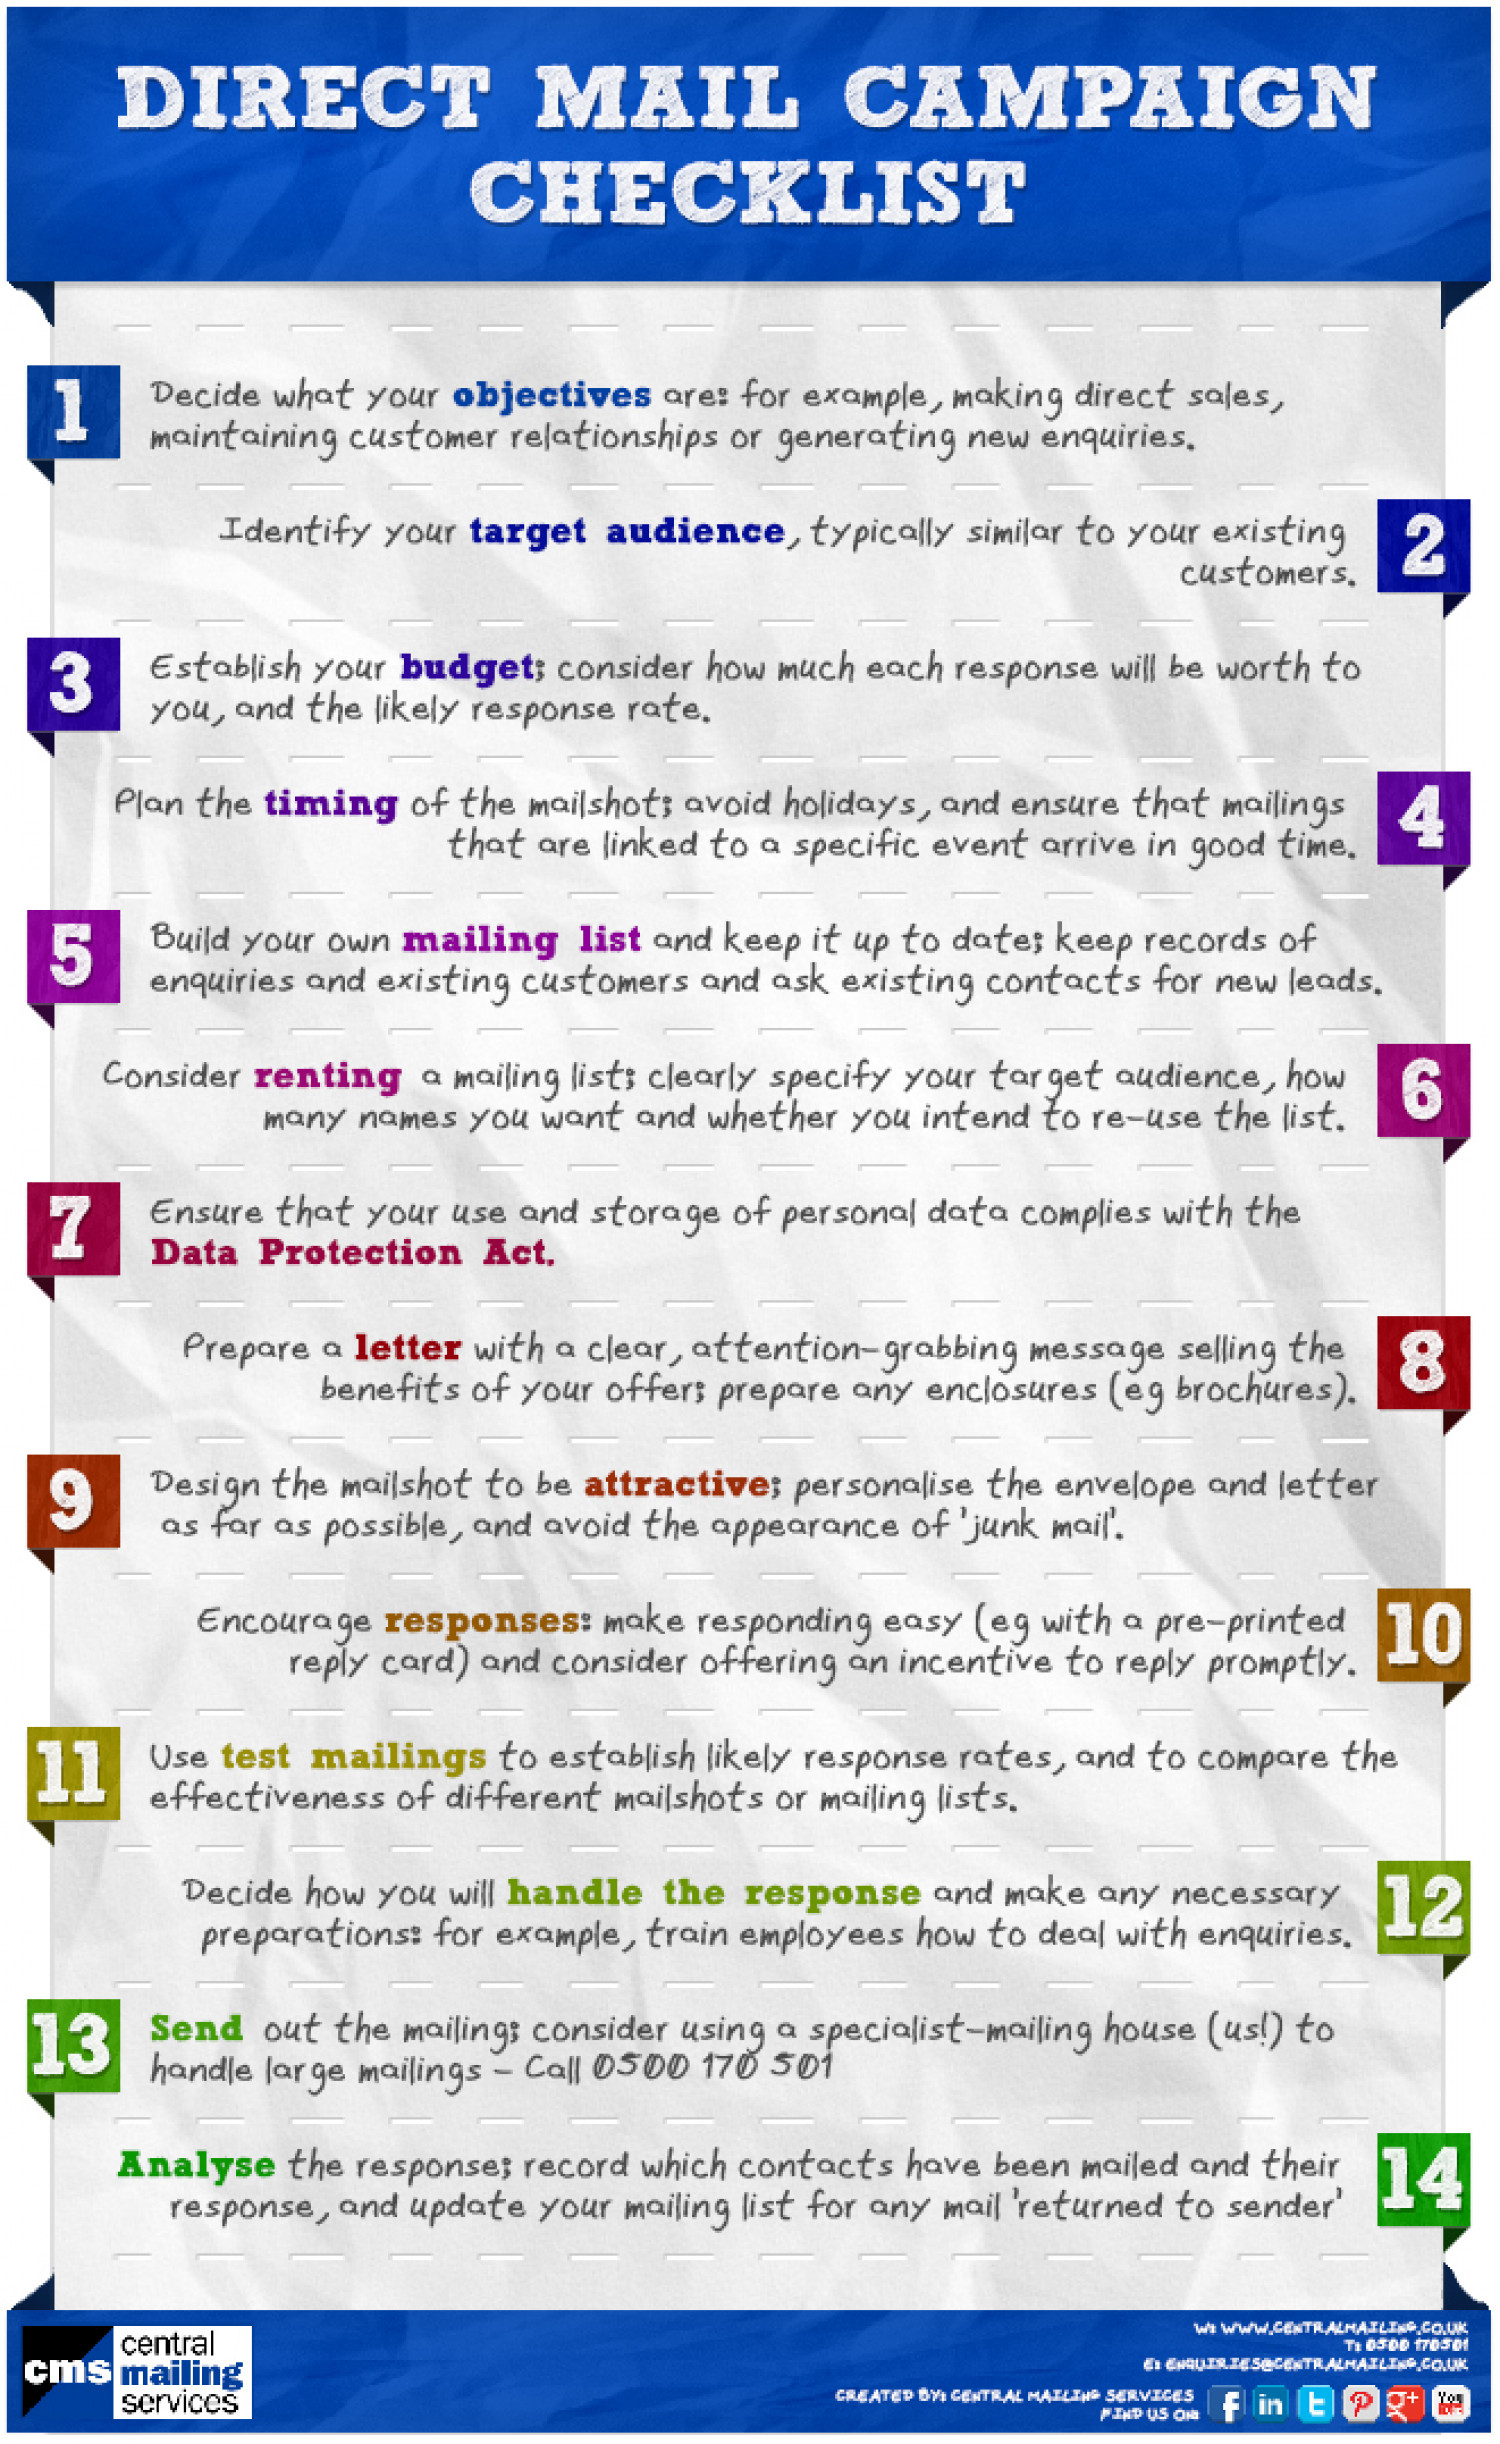 Direct Mail Campaign Checklist Visual Ly